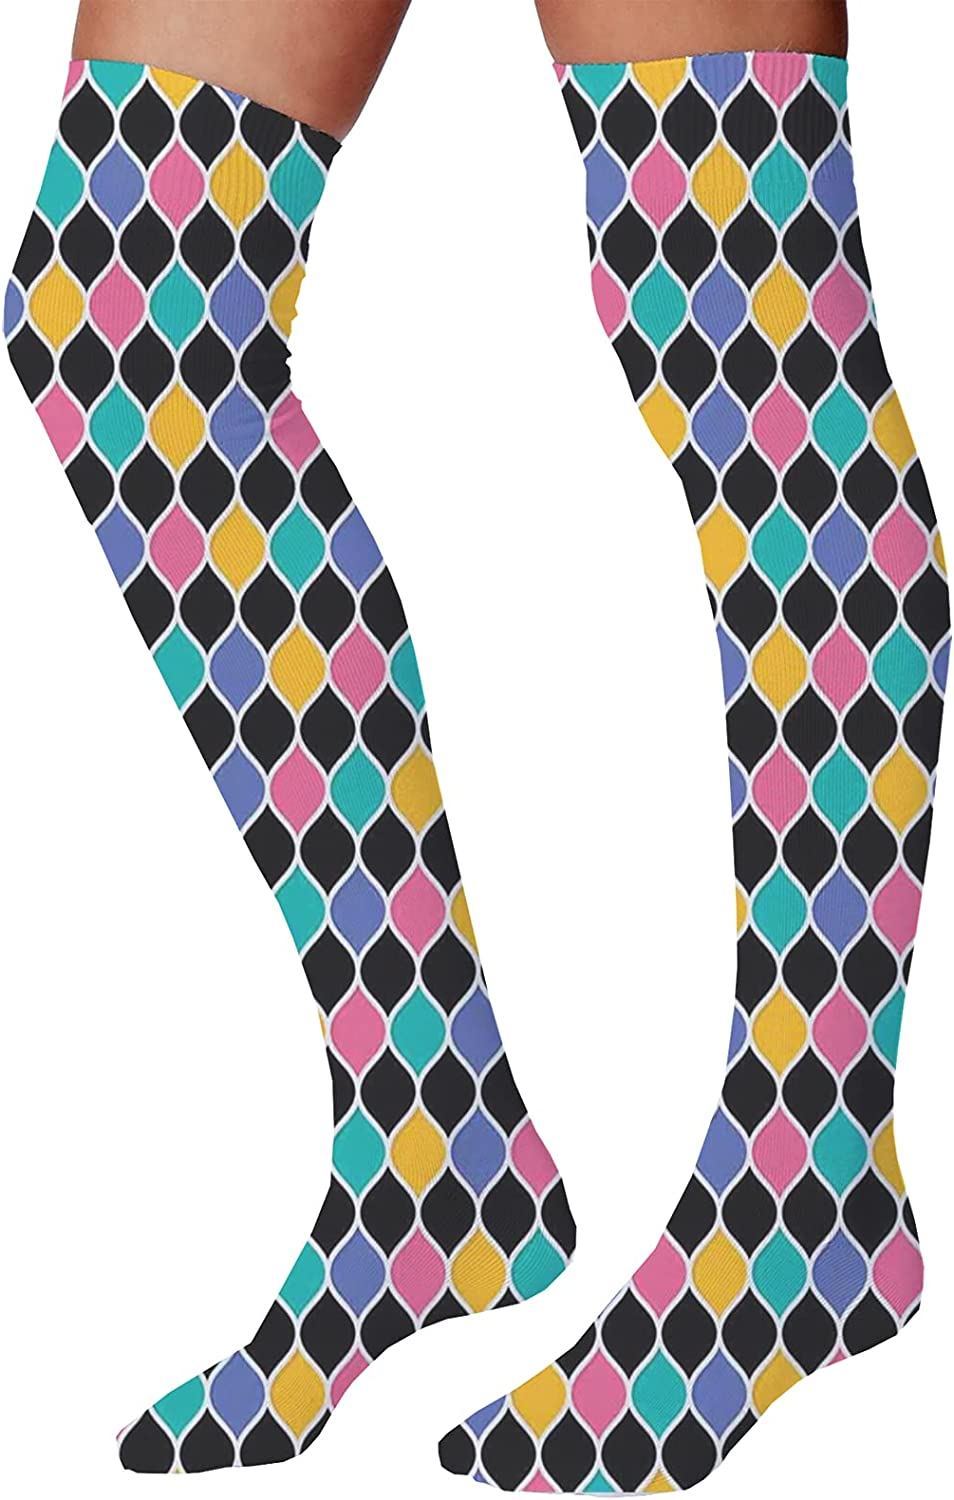 Men's and Women's Fun Socks,Abstract Design of Interlinked Ogee Pattern with Bold White Borders Shaded Effect